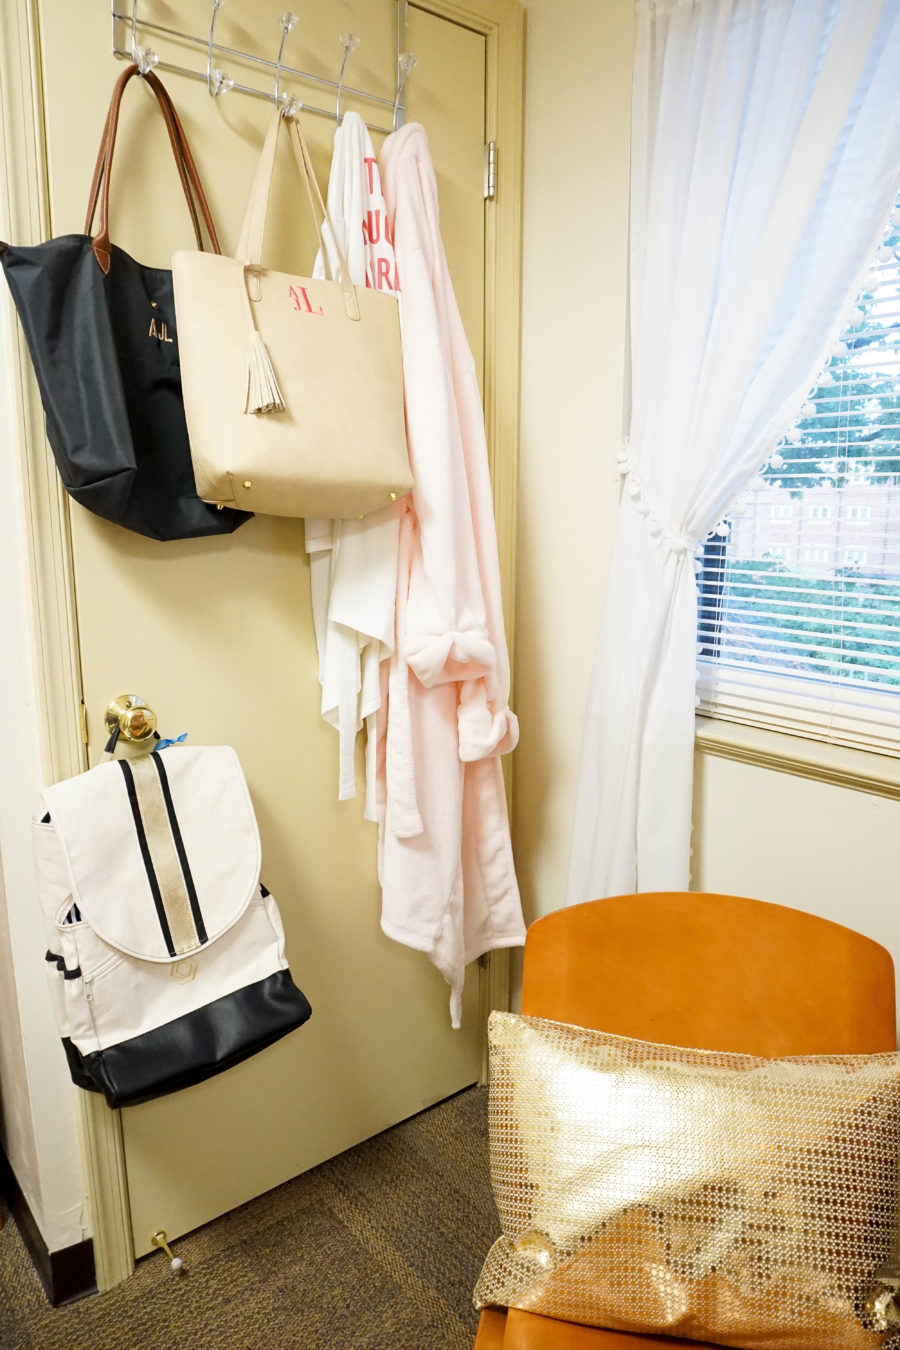 amy-littleson-from-i-believe-in-pink-dorm-room-decor-with-annie-selke-co-evelyn-henson-and-all-for-color_-11